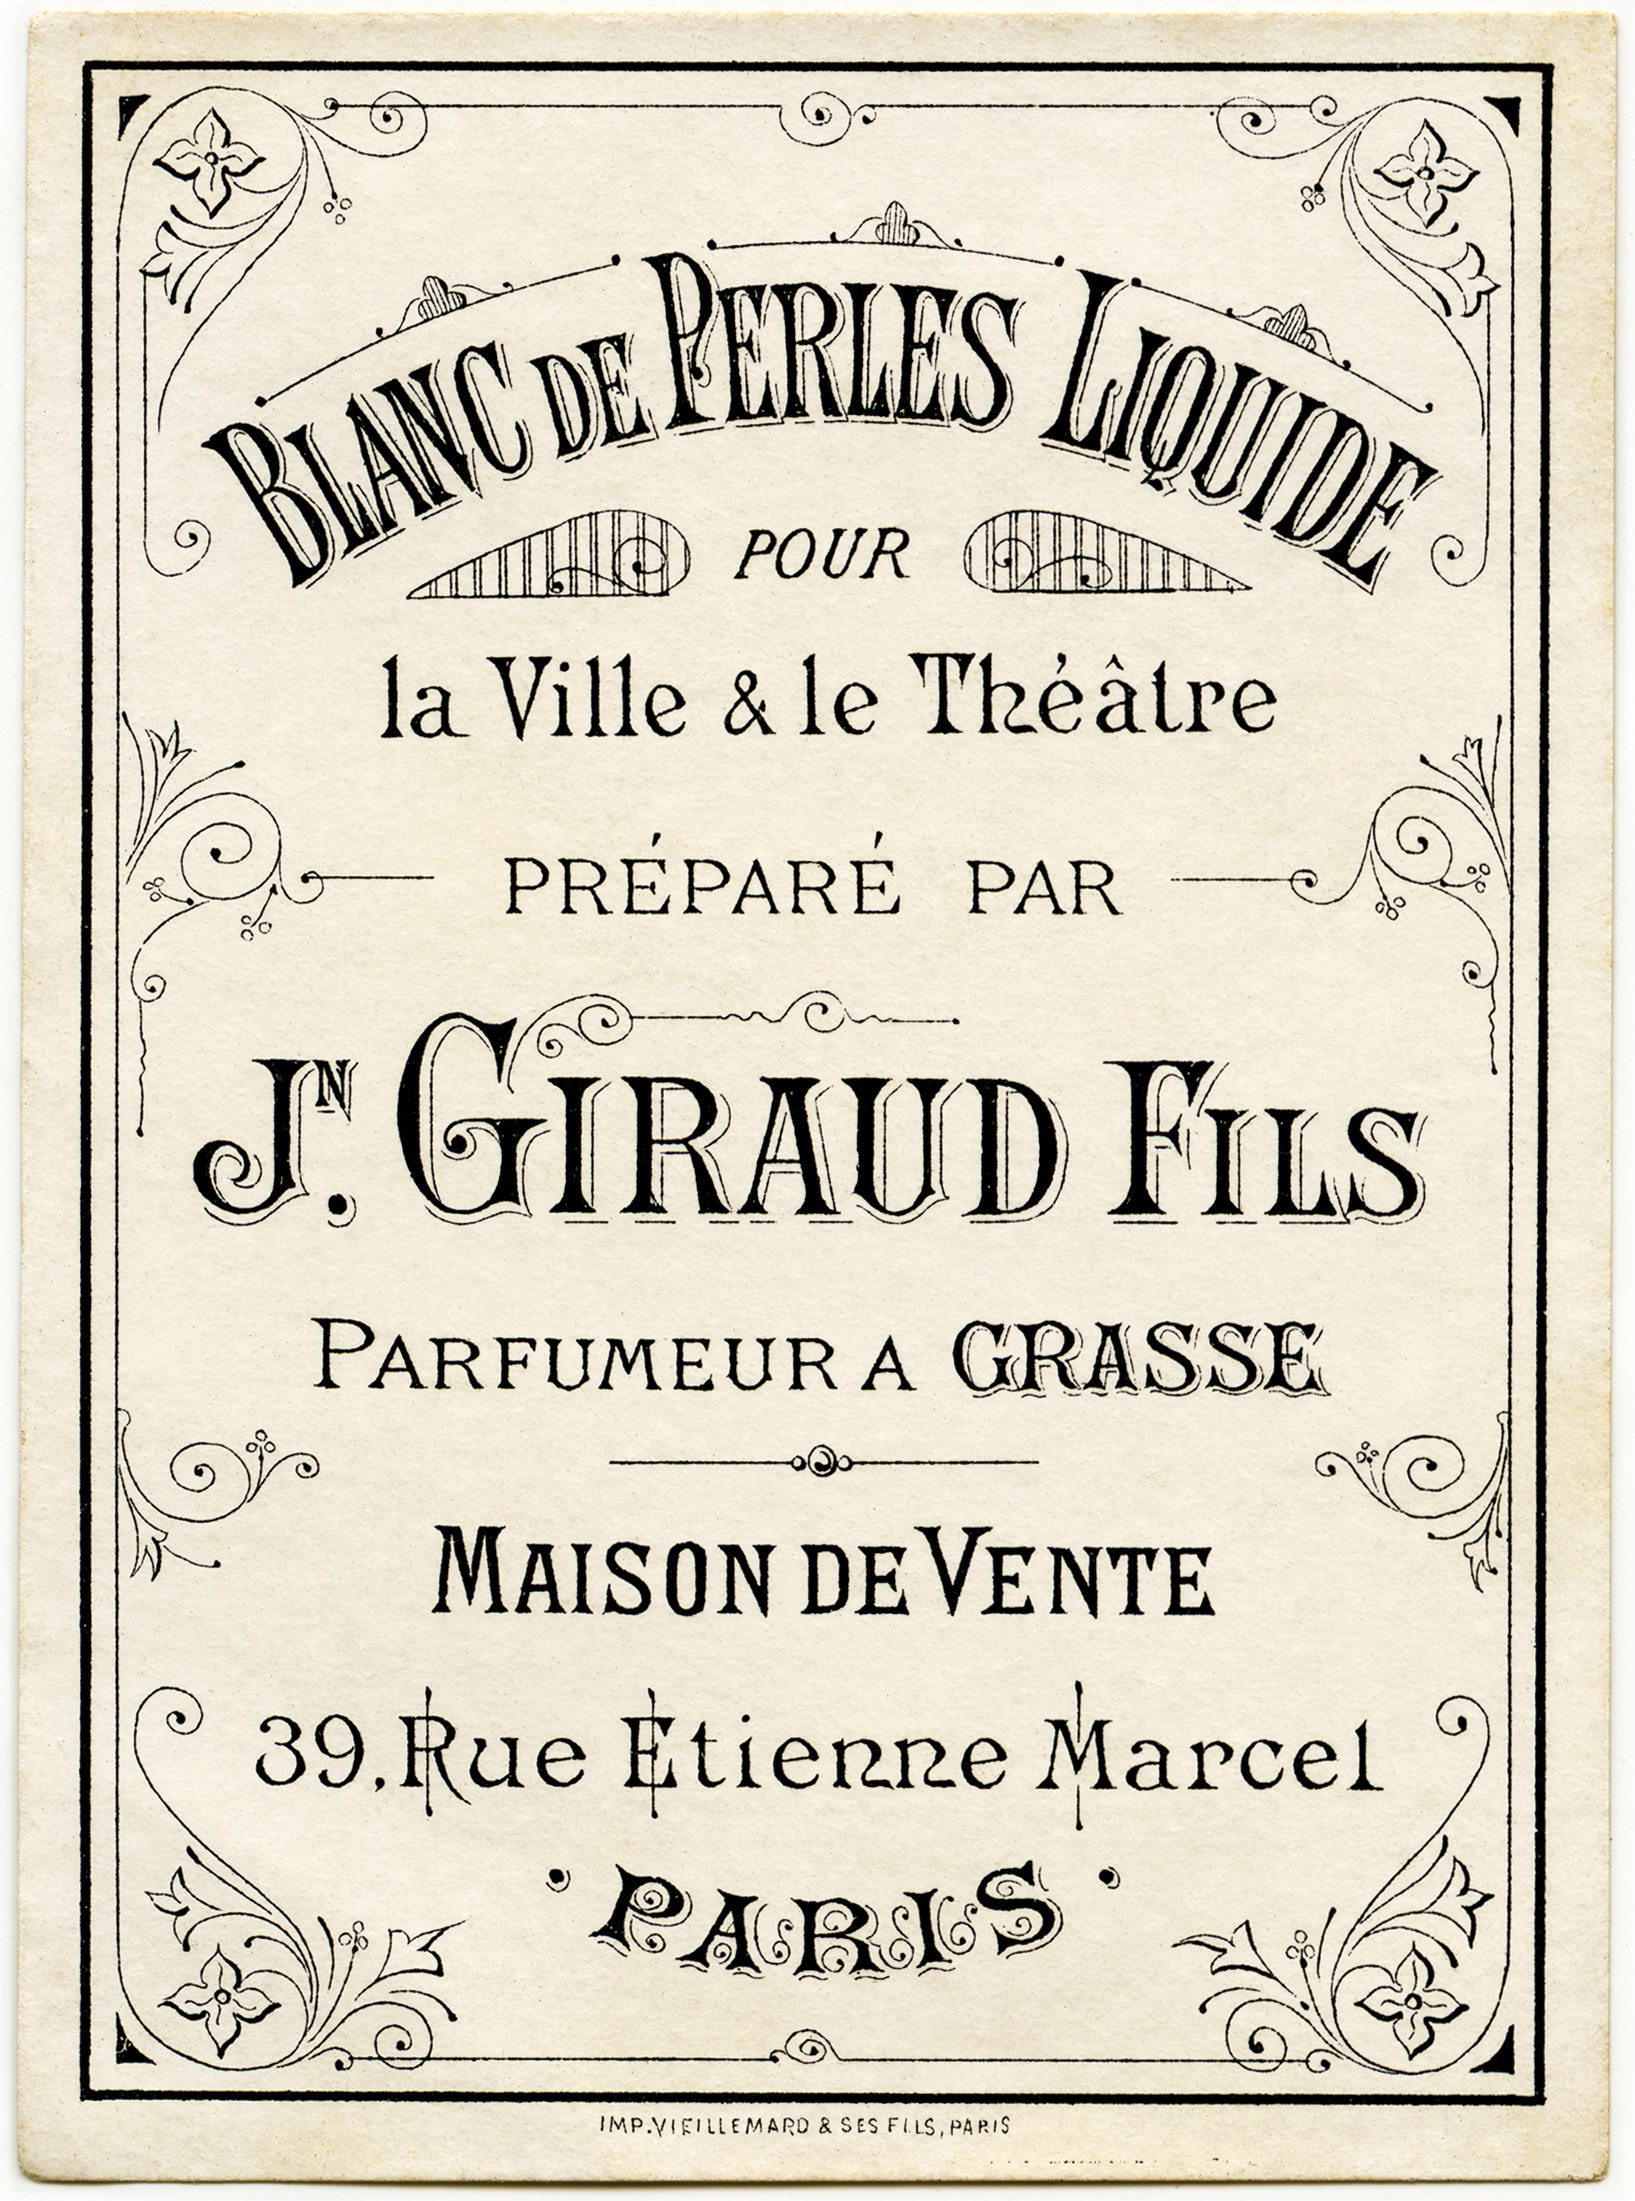 blanc de perles liquide, vintage beauty label, antique French perfume label, J Giraud Fils image, vintage ephemera graphics, old French printable